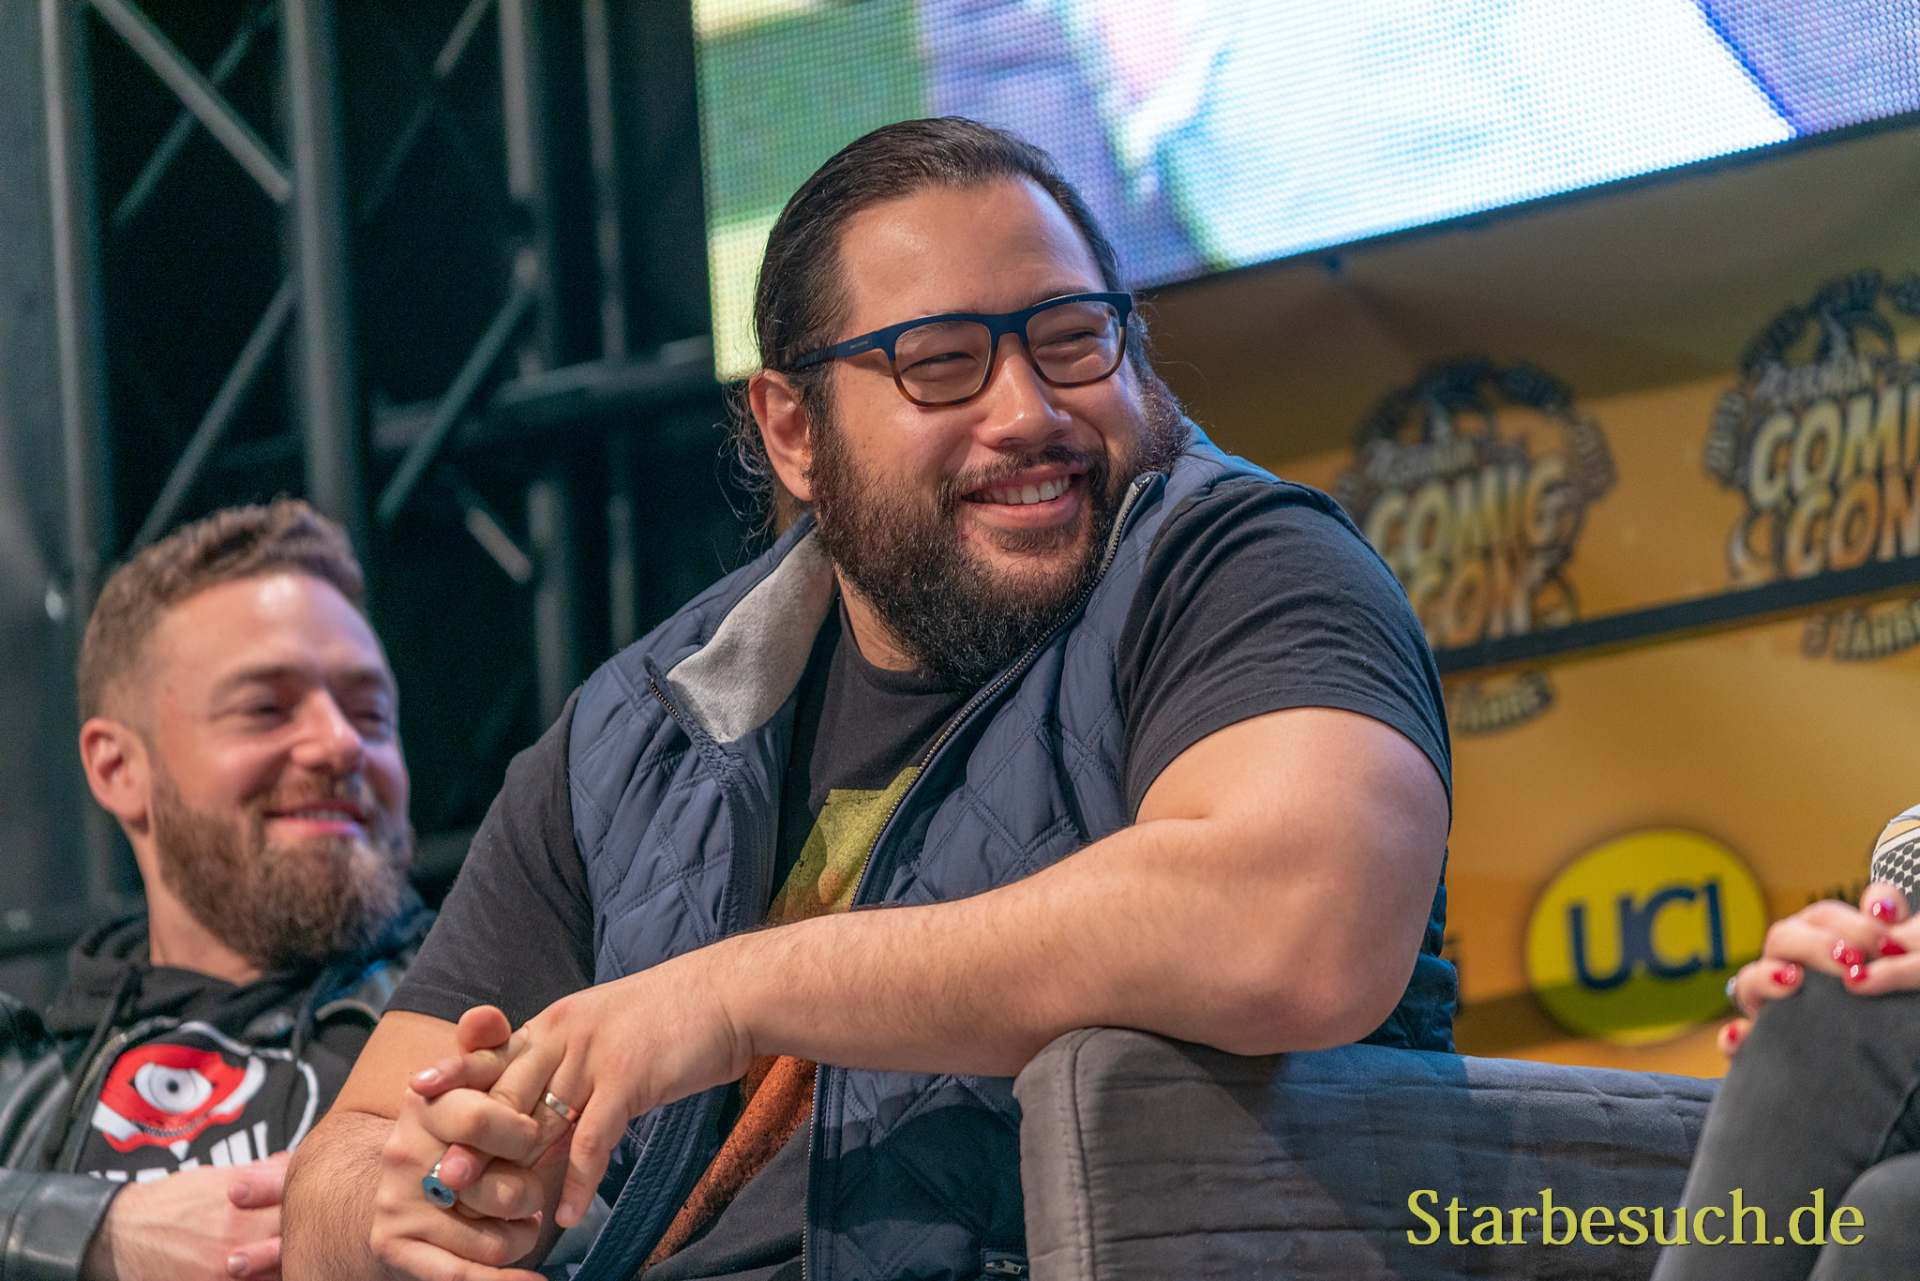 DORTMUND, GERMANY - December 8th 2019: Cooper Andrews and Ross Marquand at German Comic Con Dortmund